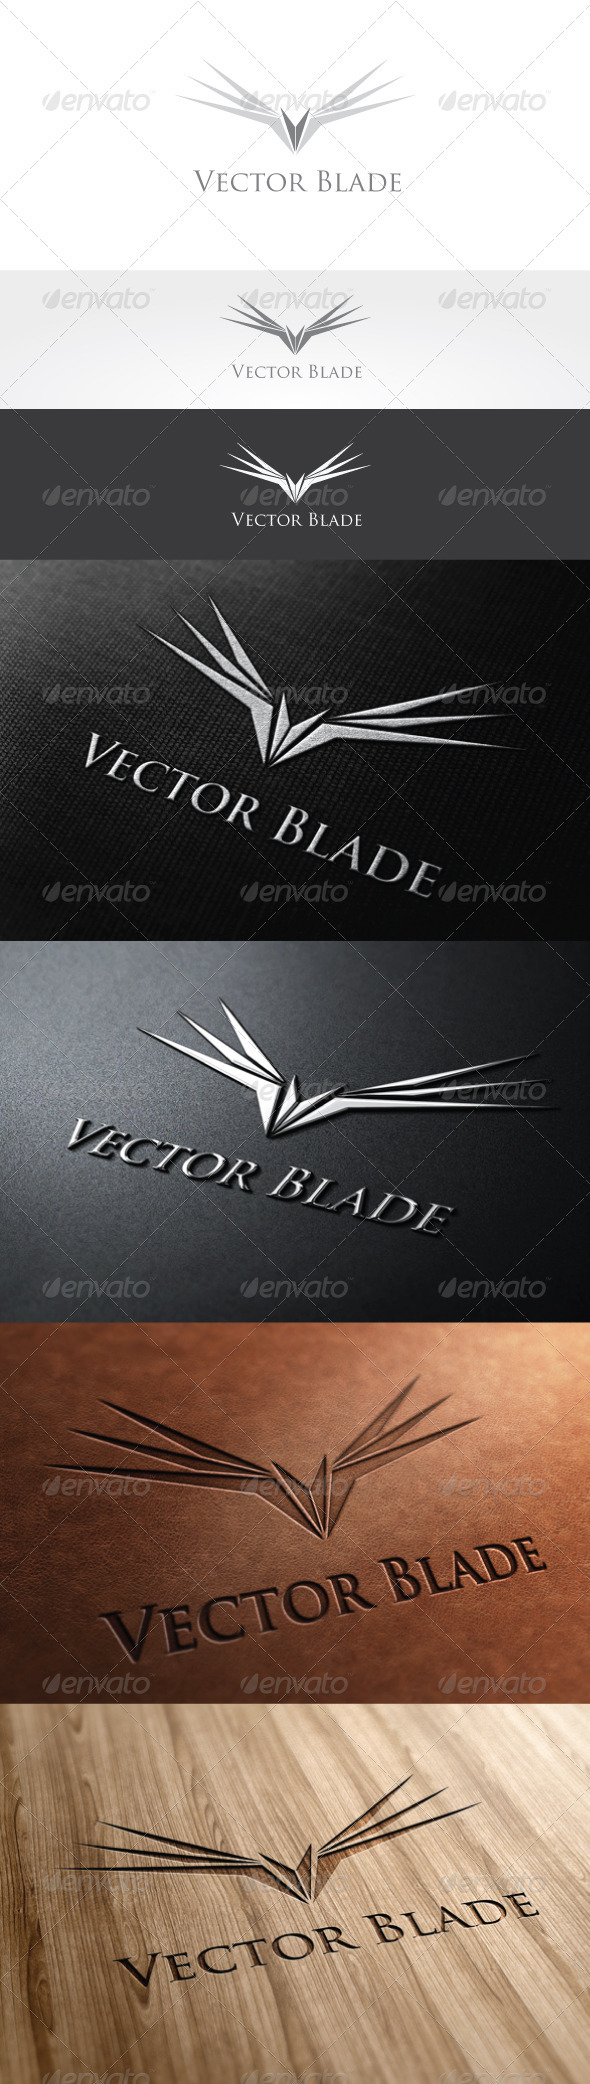 Vector Blade Logo Template - Letters Logo Templates